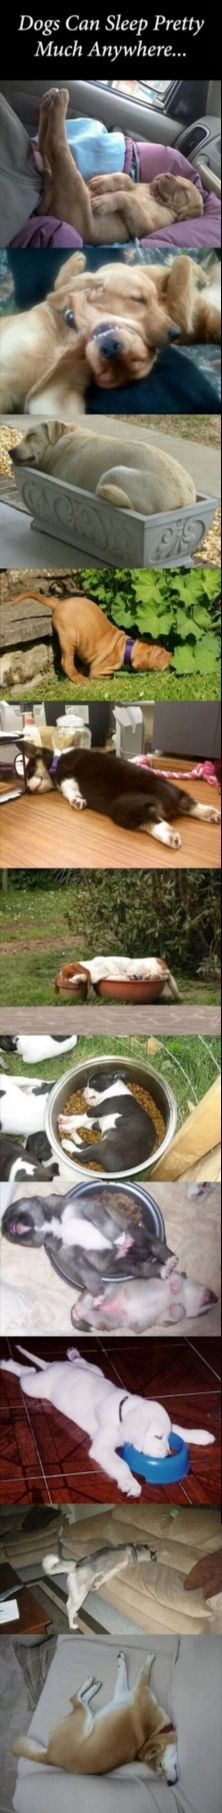 AKC Breeds By Group Terrier Dogs Of Animals Pinterest - 20 adorable puppies that will pretty much sleep anywhere